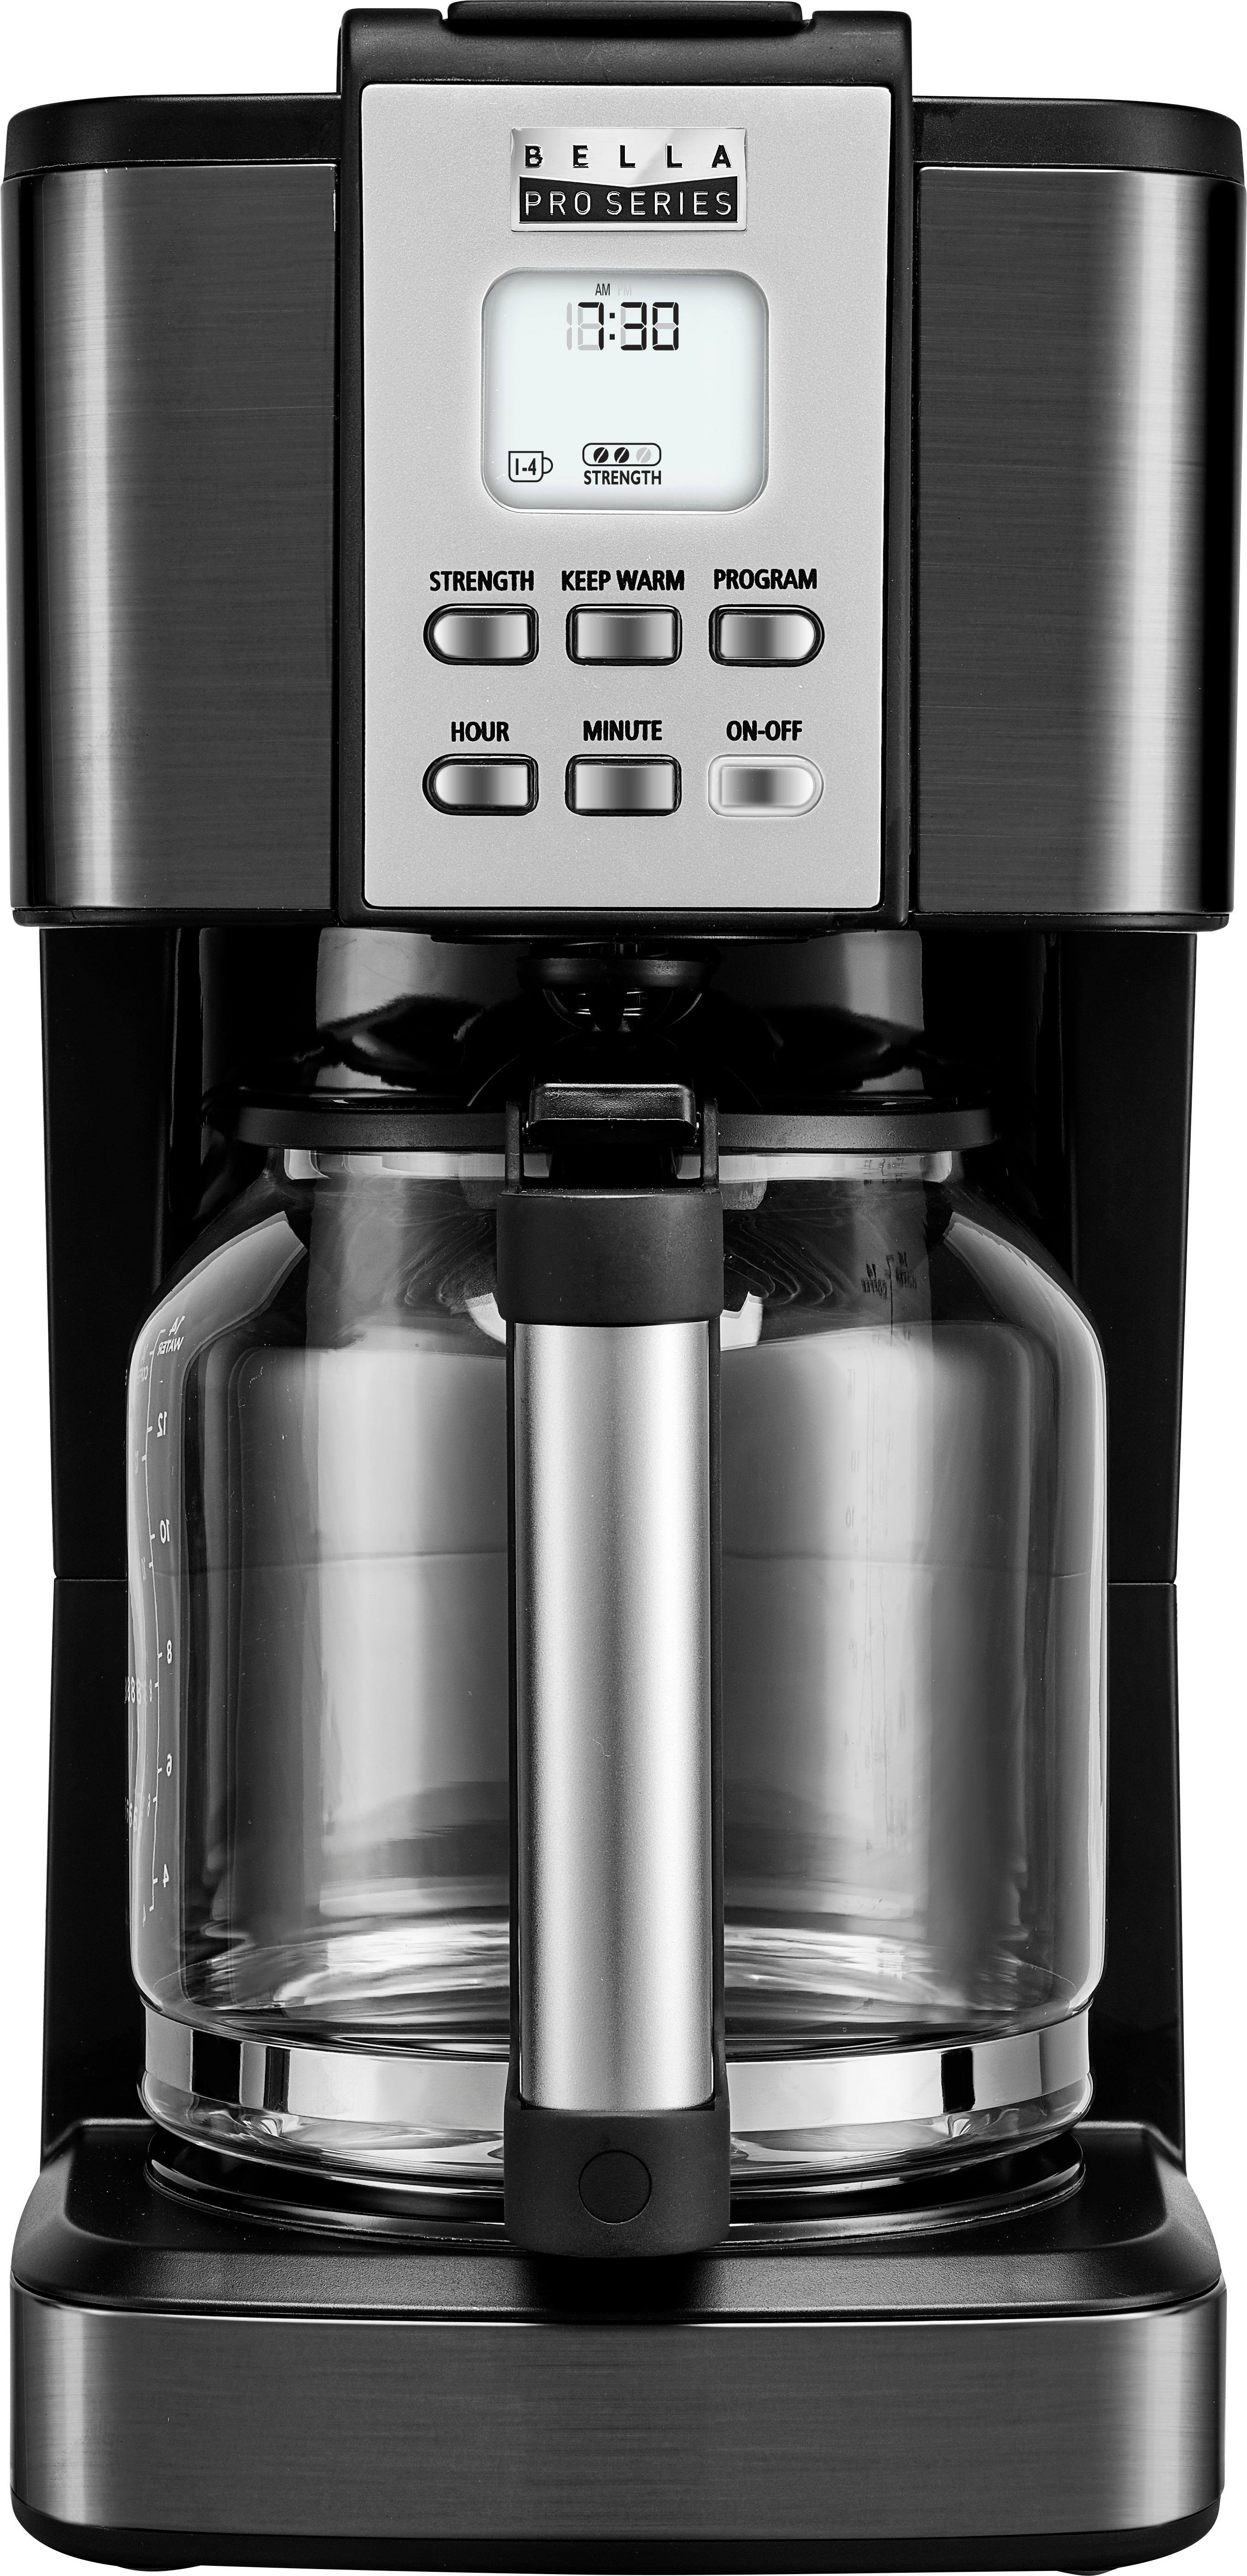 Bella - Pro Series 14-Cup Coffee Maker for $24.99 + Free Store Pickup